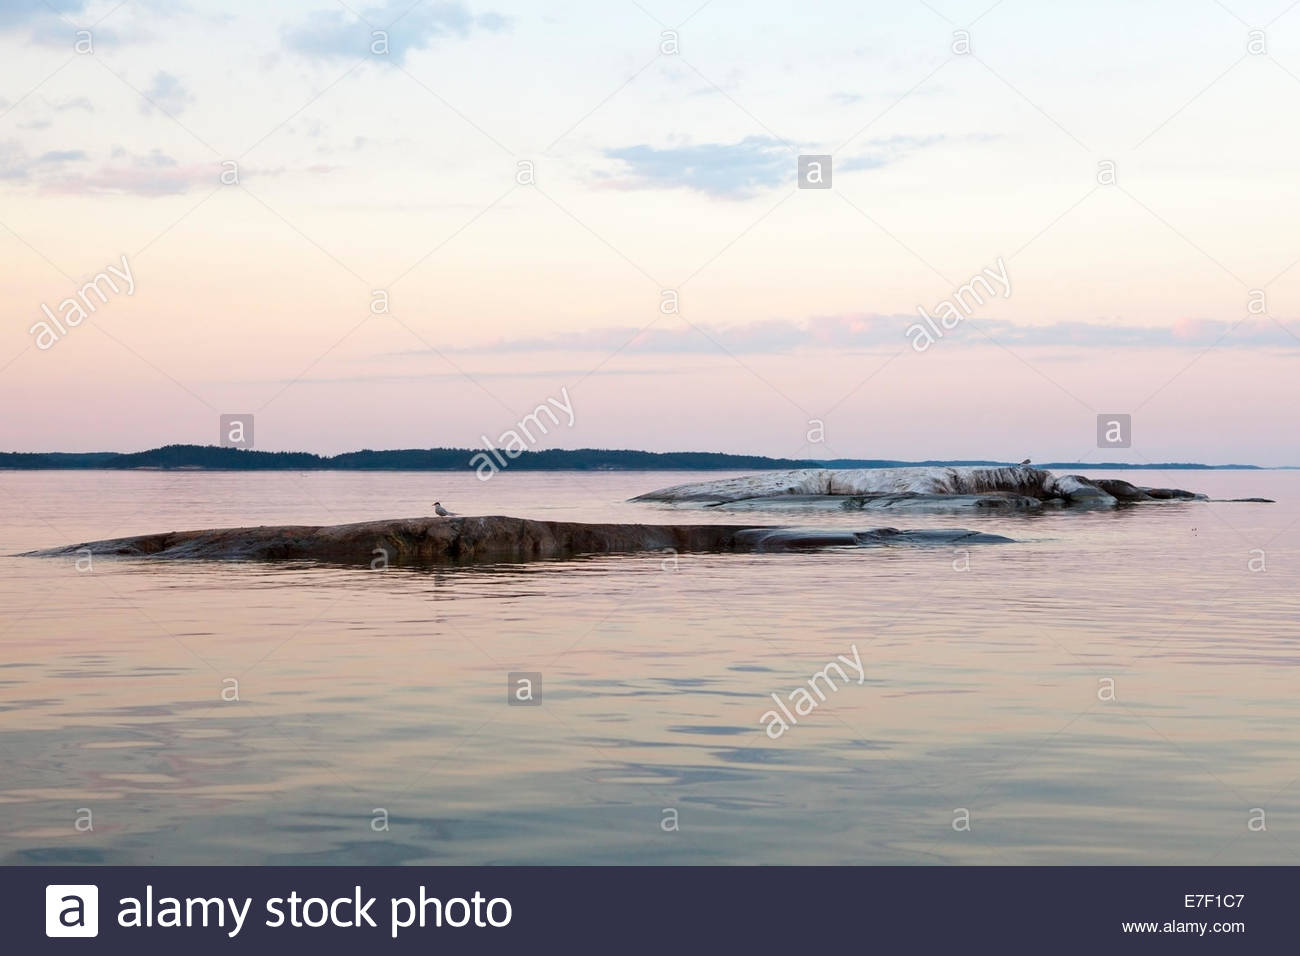 Twilight in the summer at the archipelago of Turku Finland - Stock Image